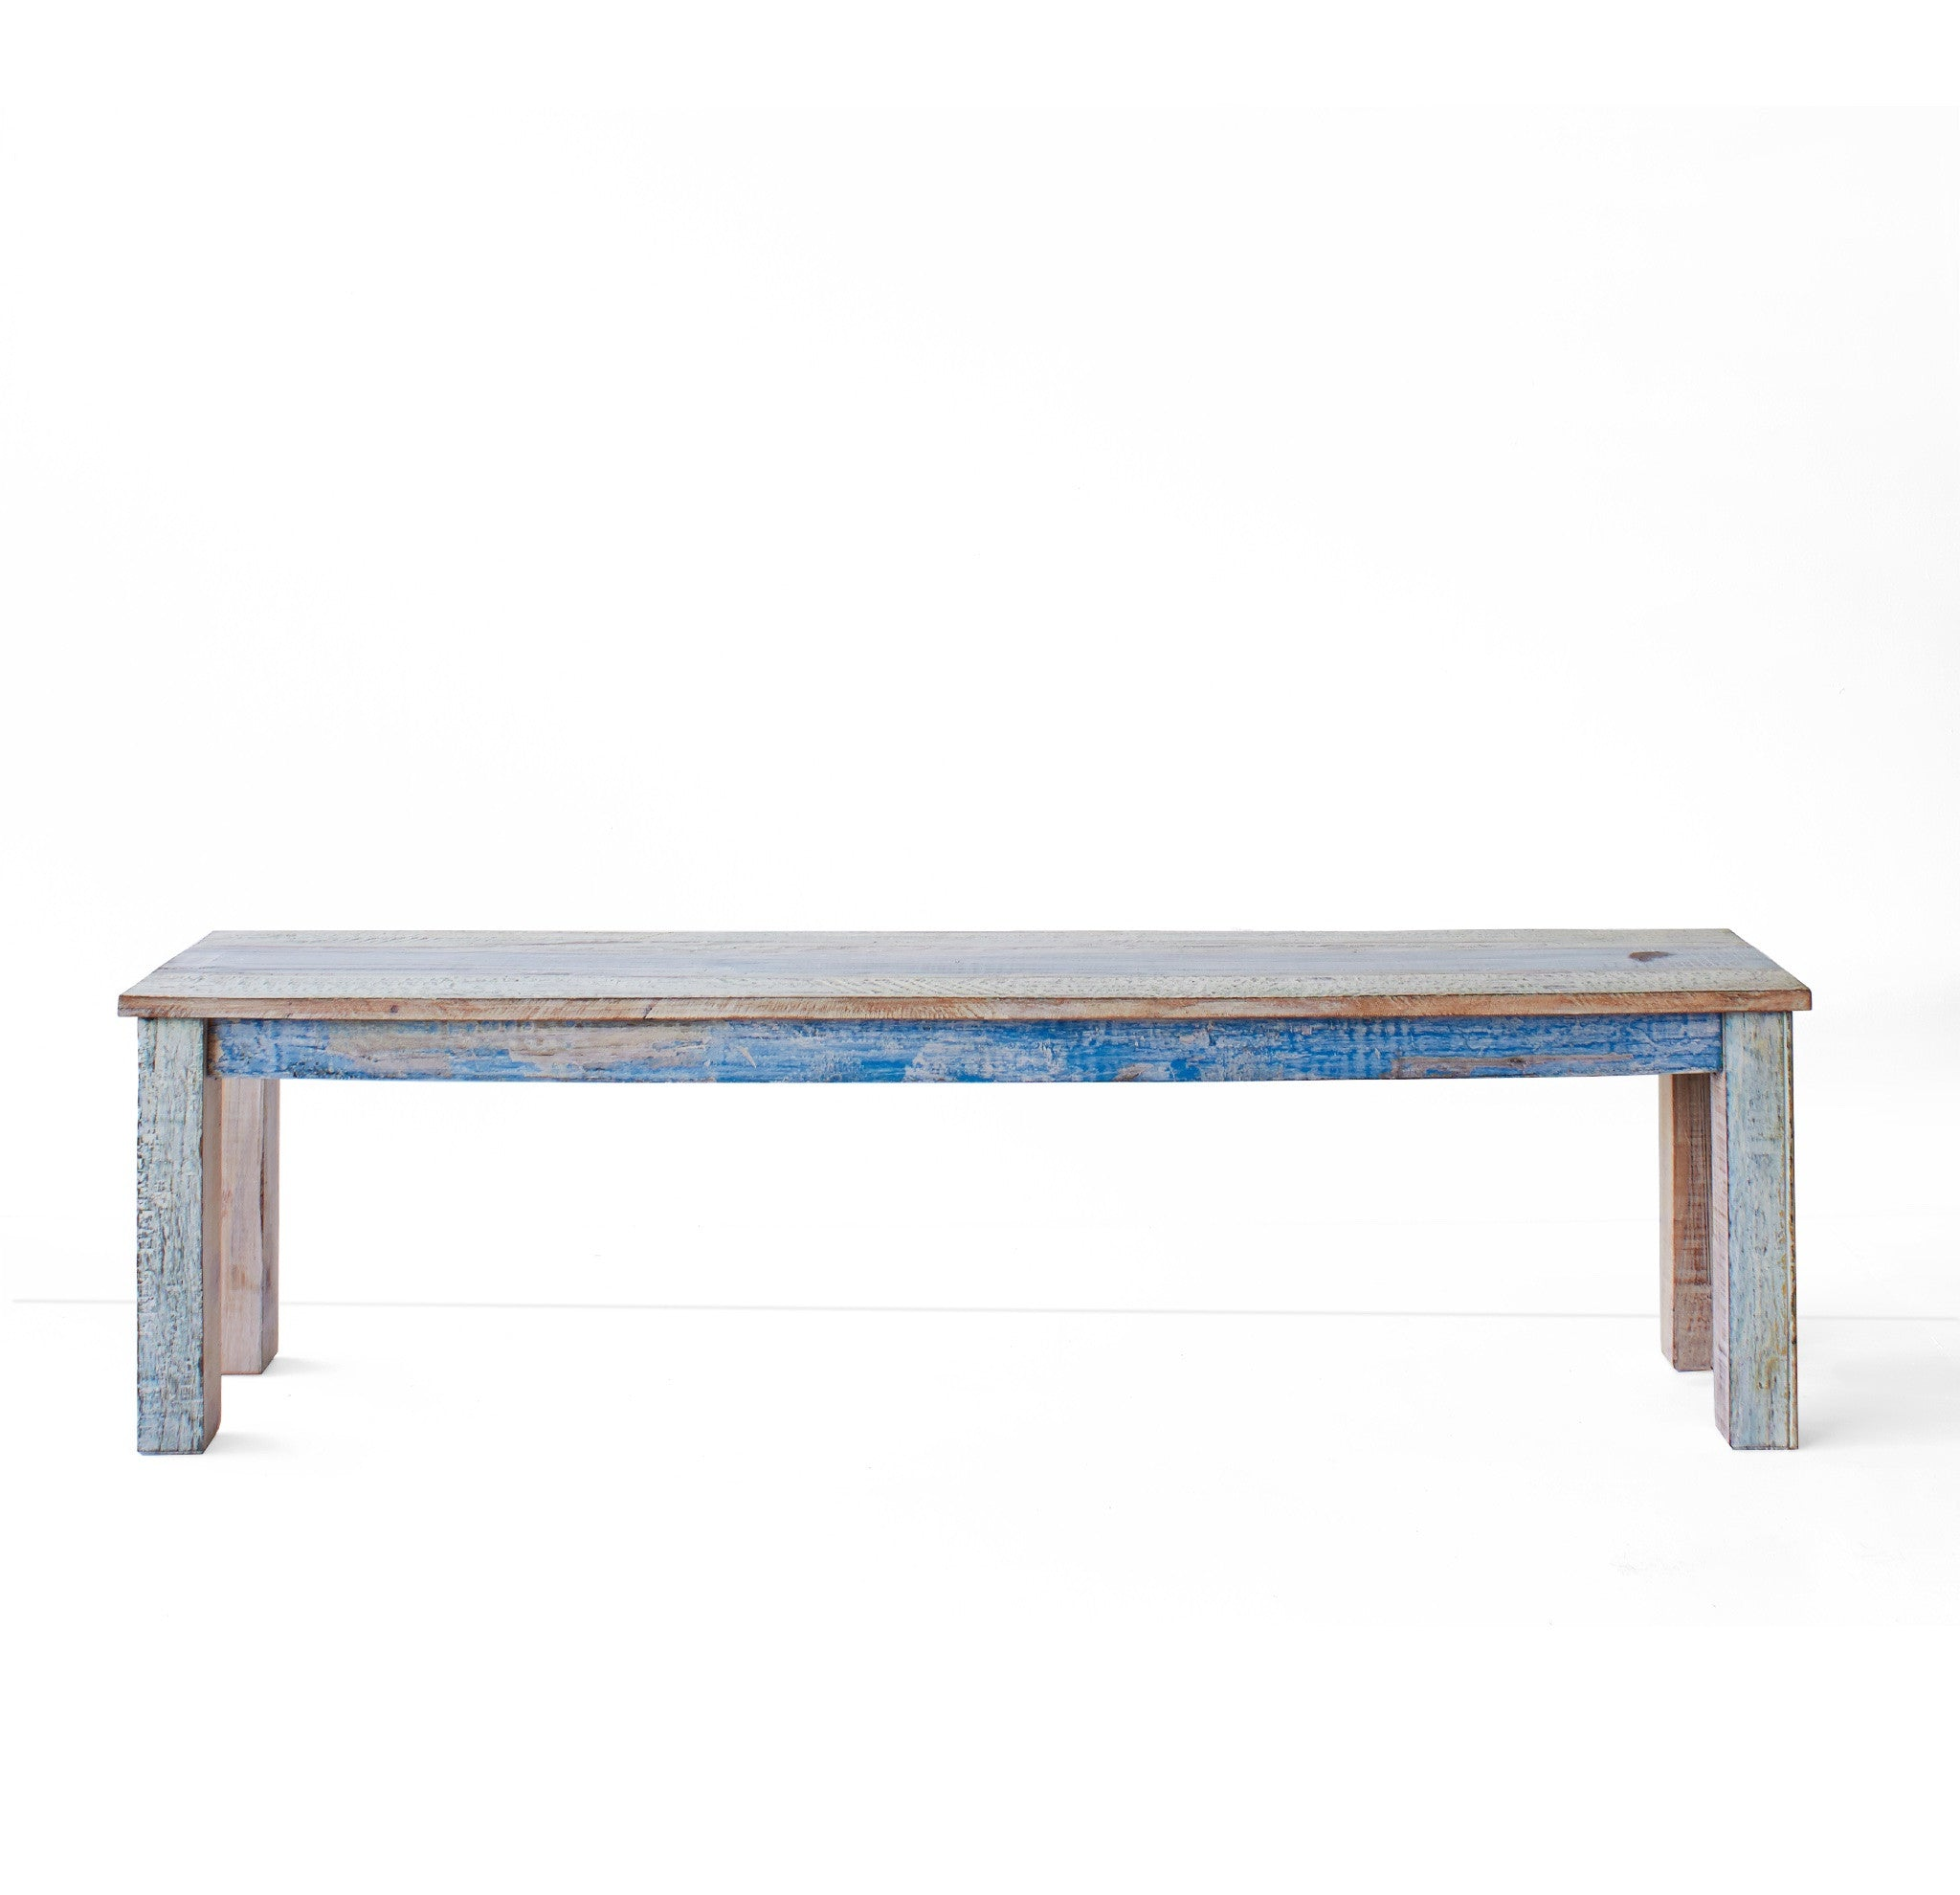 Wooden Bench | Ledge-Nomad India-Originals Furniture - 1